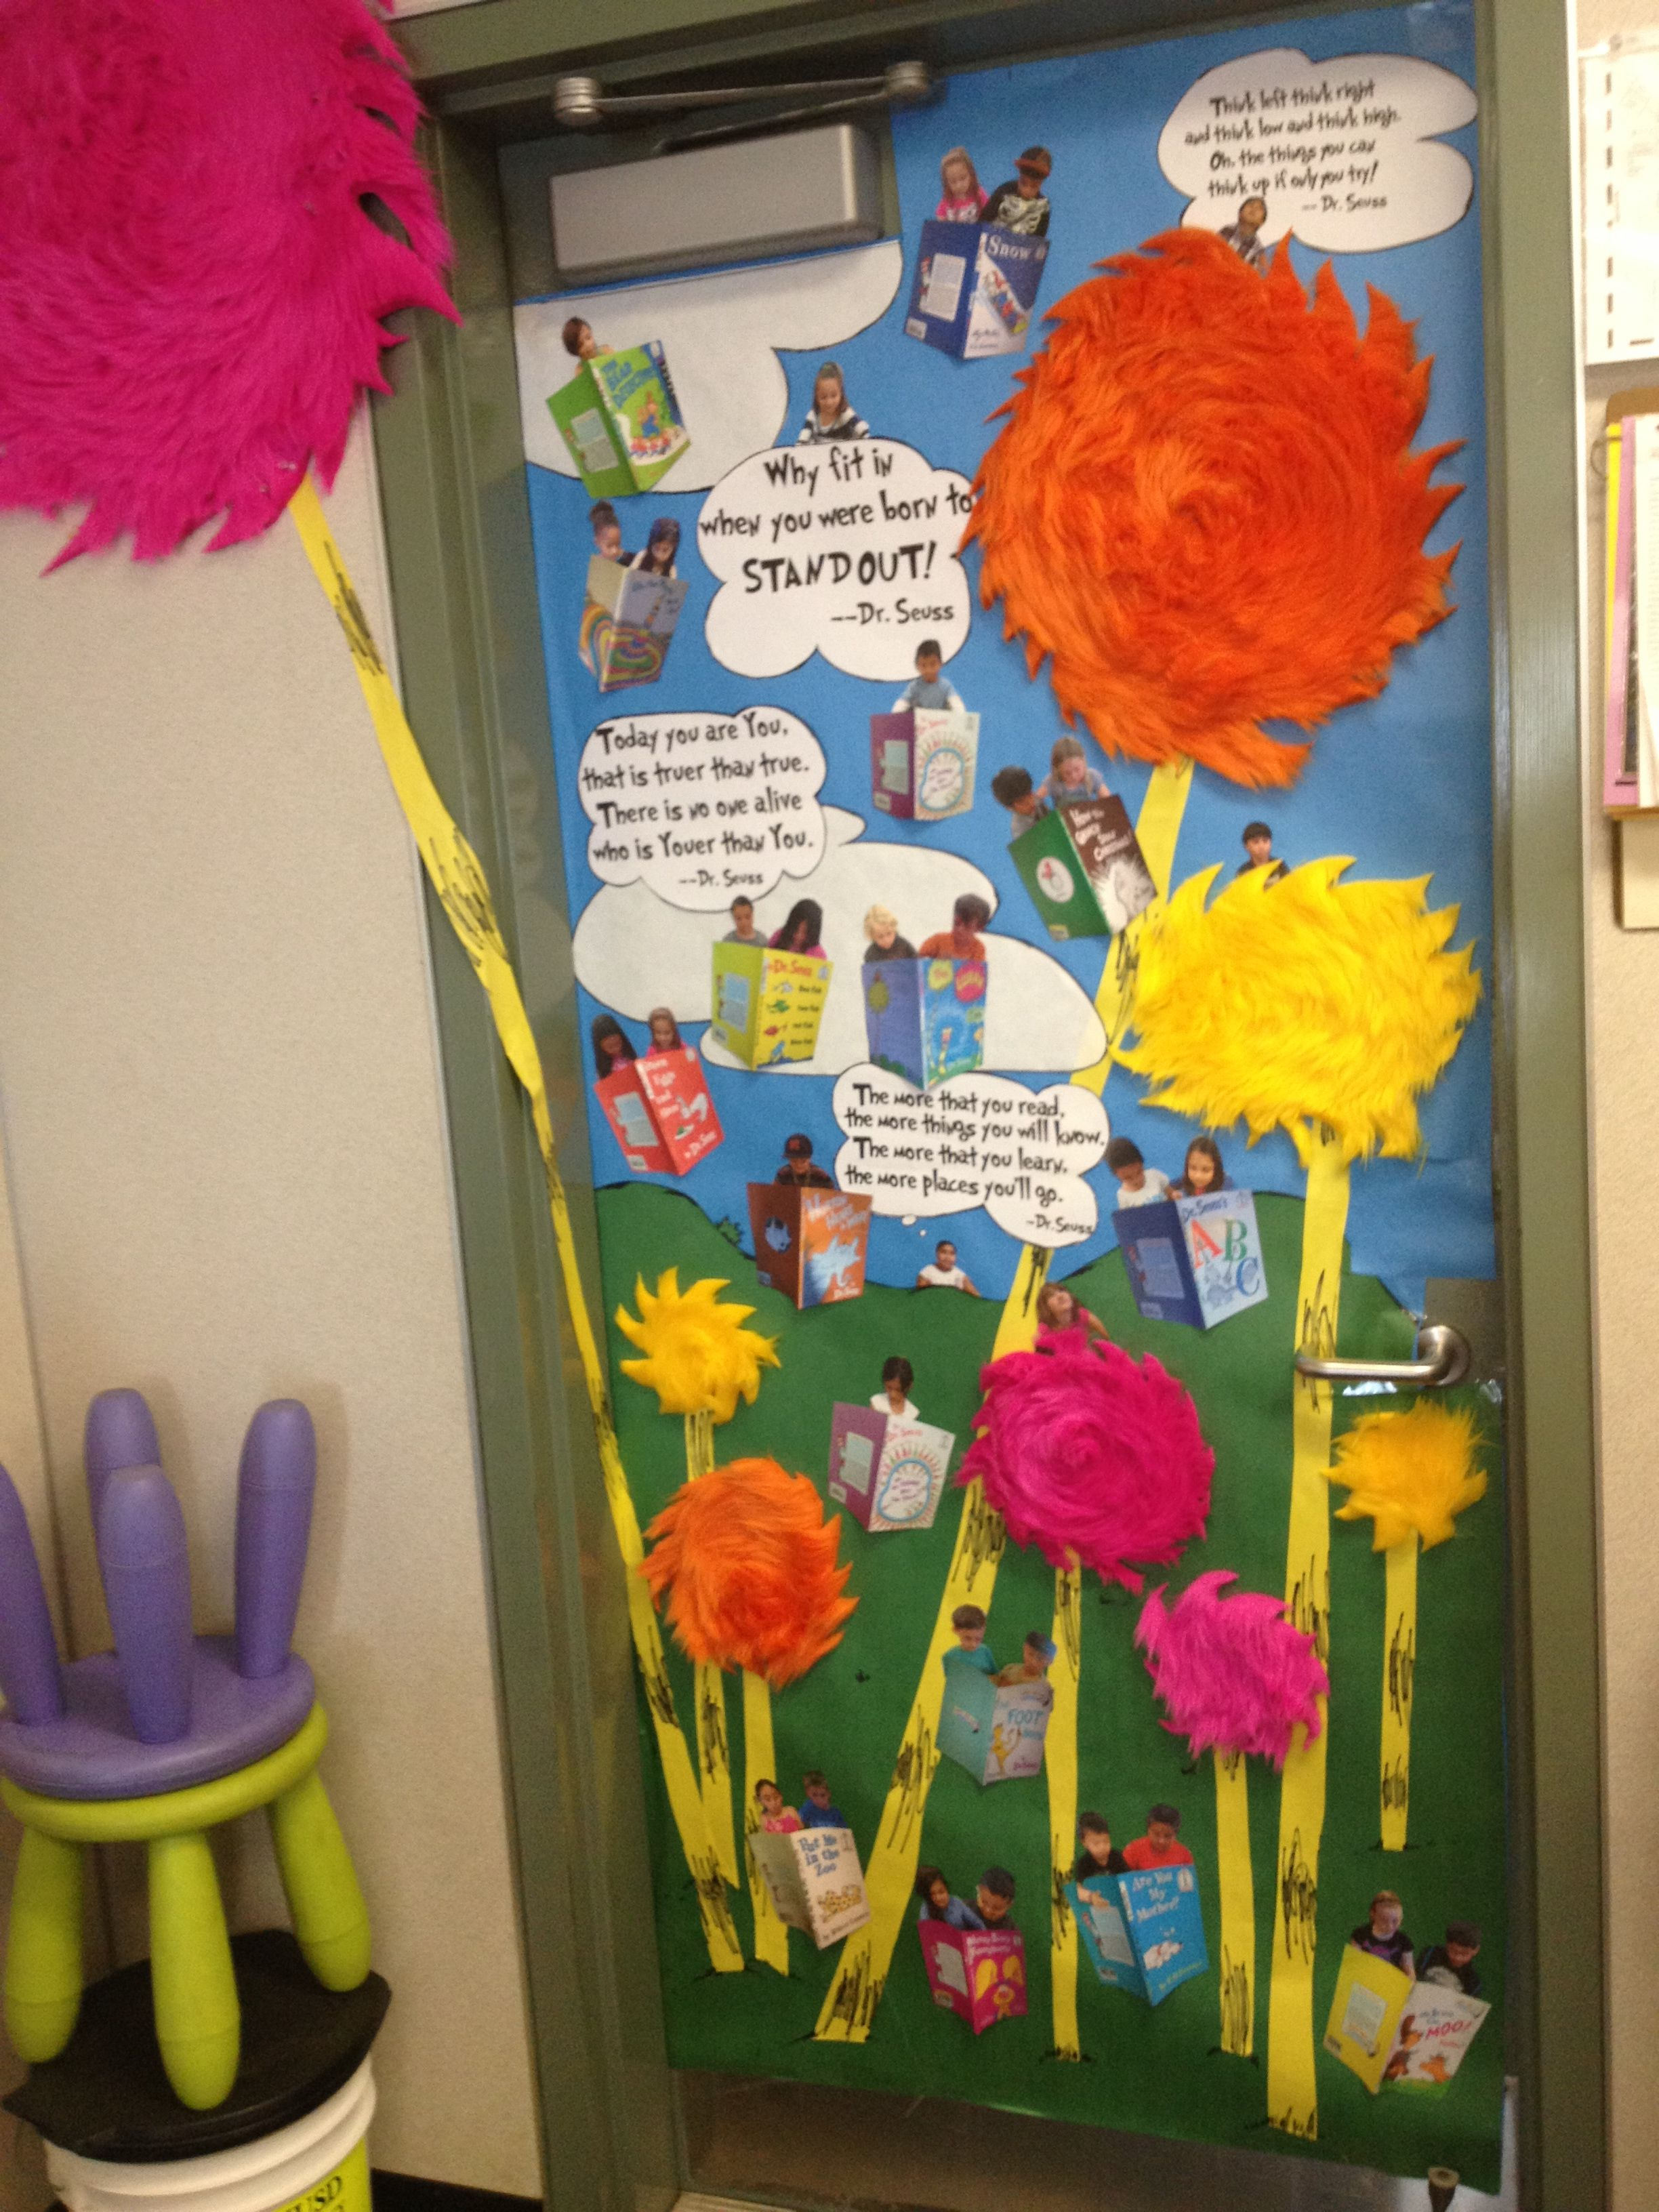 Dr. Seuss Lorax tree inspired door banner decoration for classroom! & Dr. Seuss Lorax tree inspired door banner decoration for classroom ...